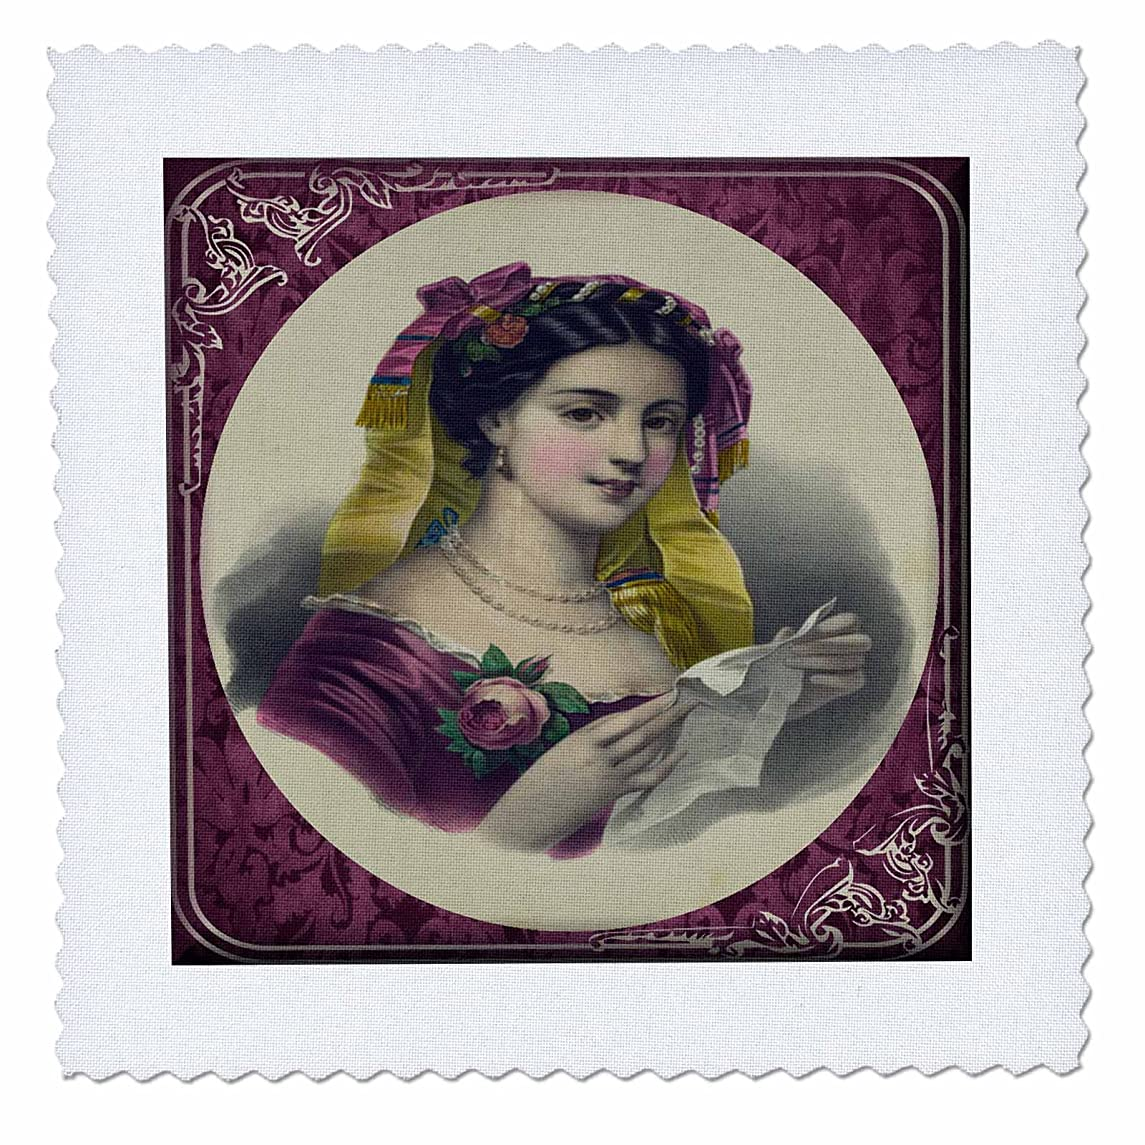 3dRose qs_21973_1 Victorian Lady in Maroon-Quilt Square, 10 by 10-Inch